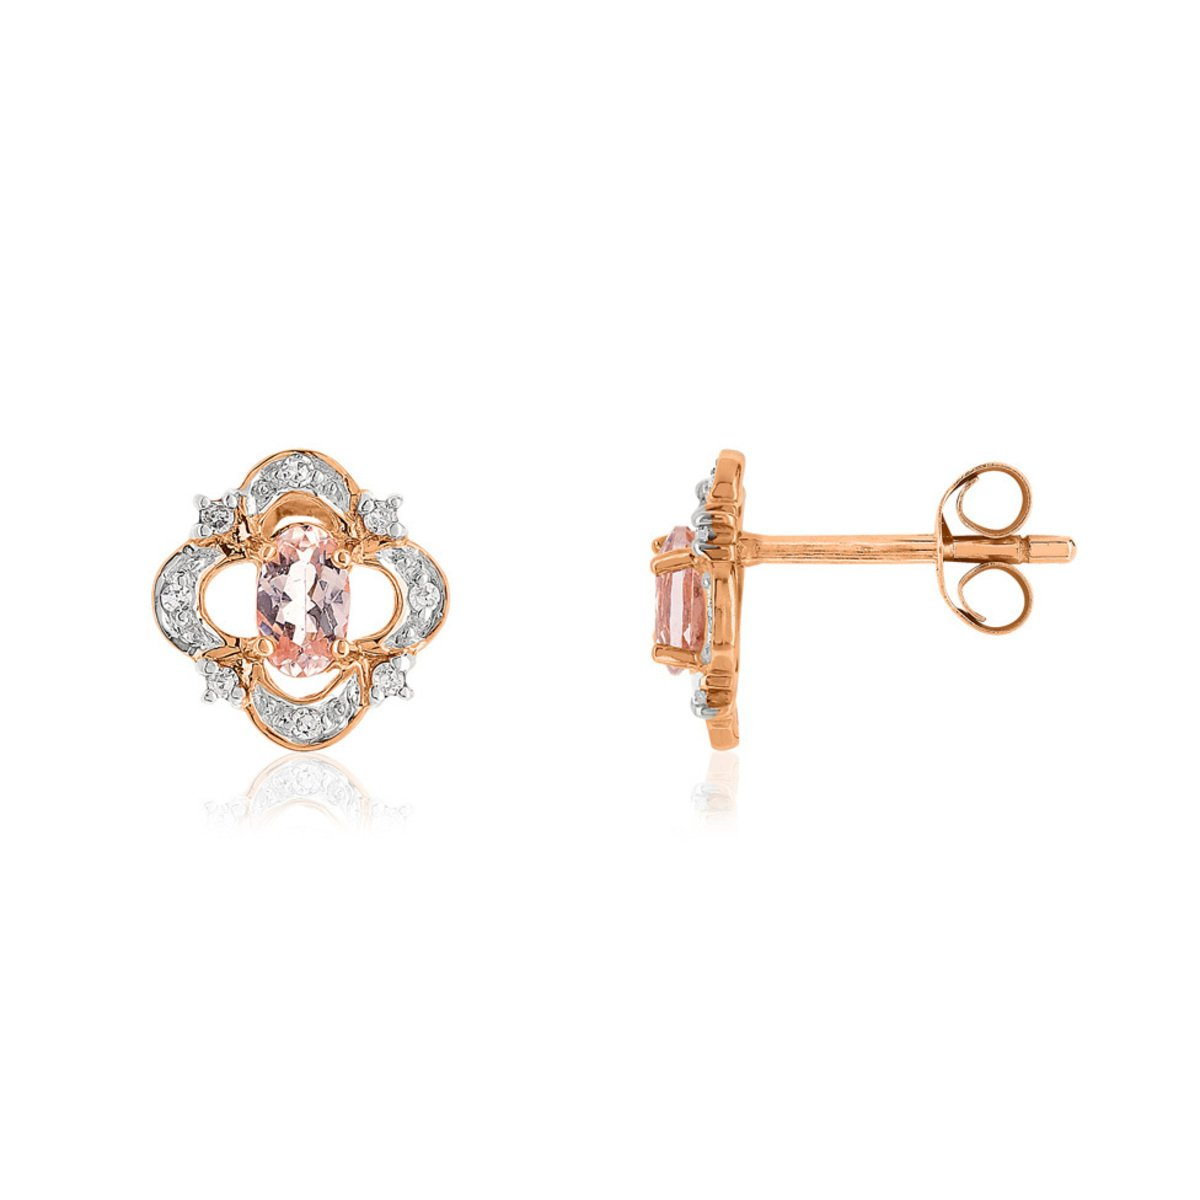 Boucles d'oreilles or 375 rose morganite diamant - vue V1